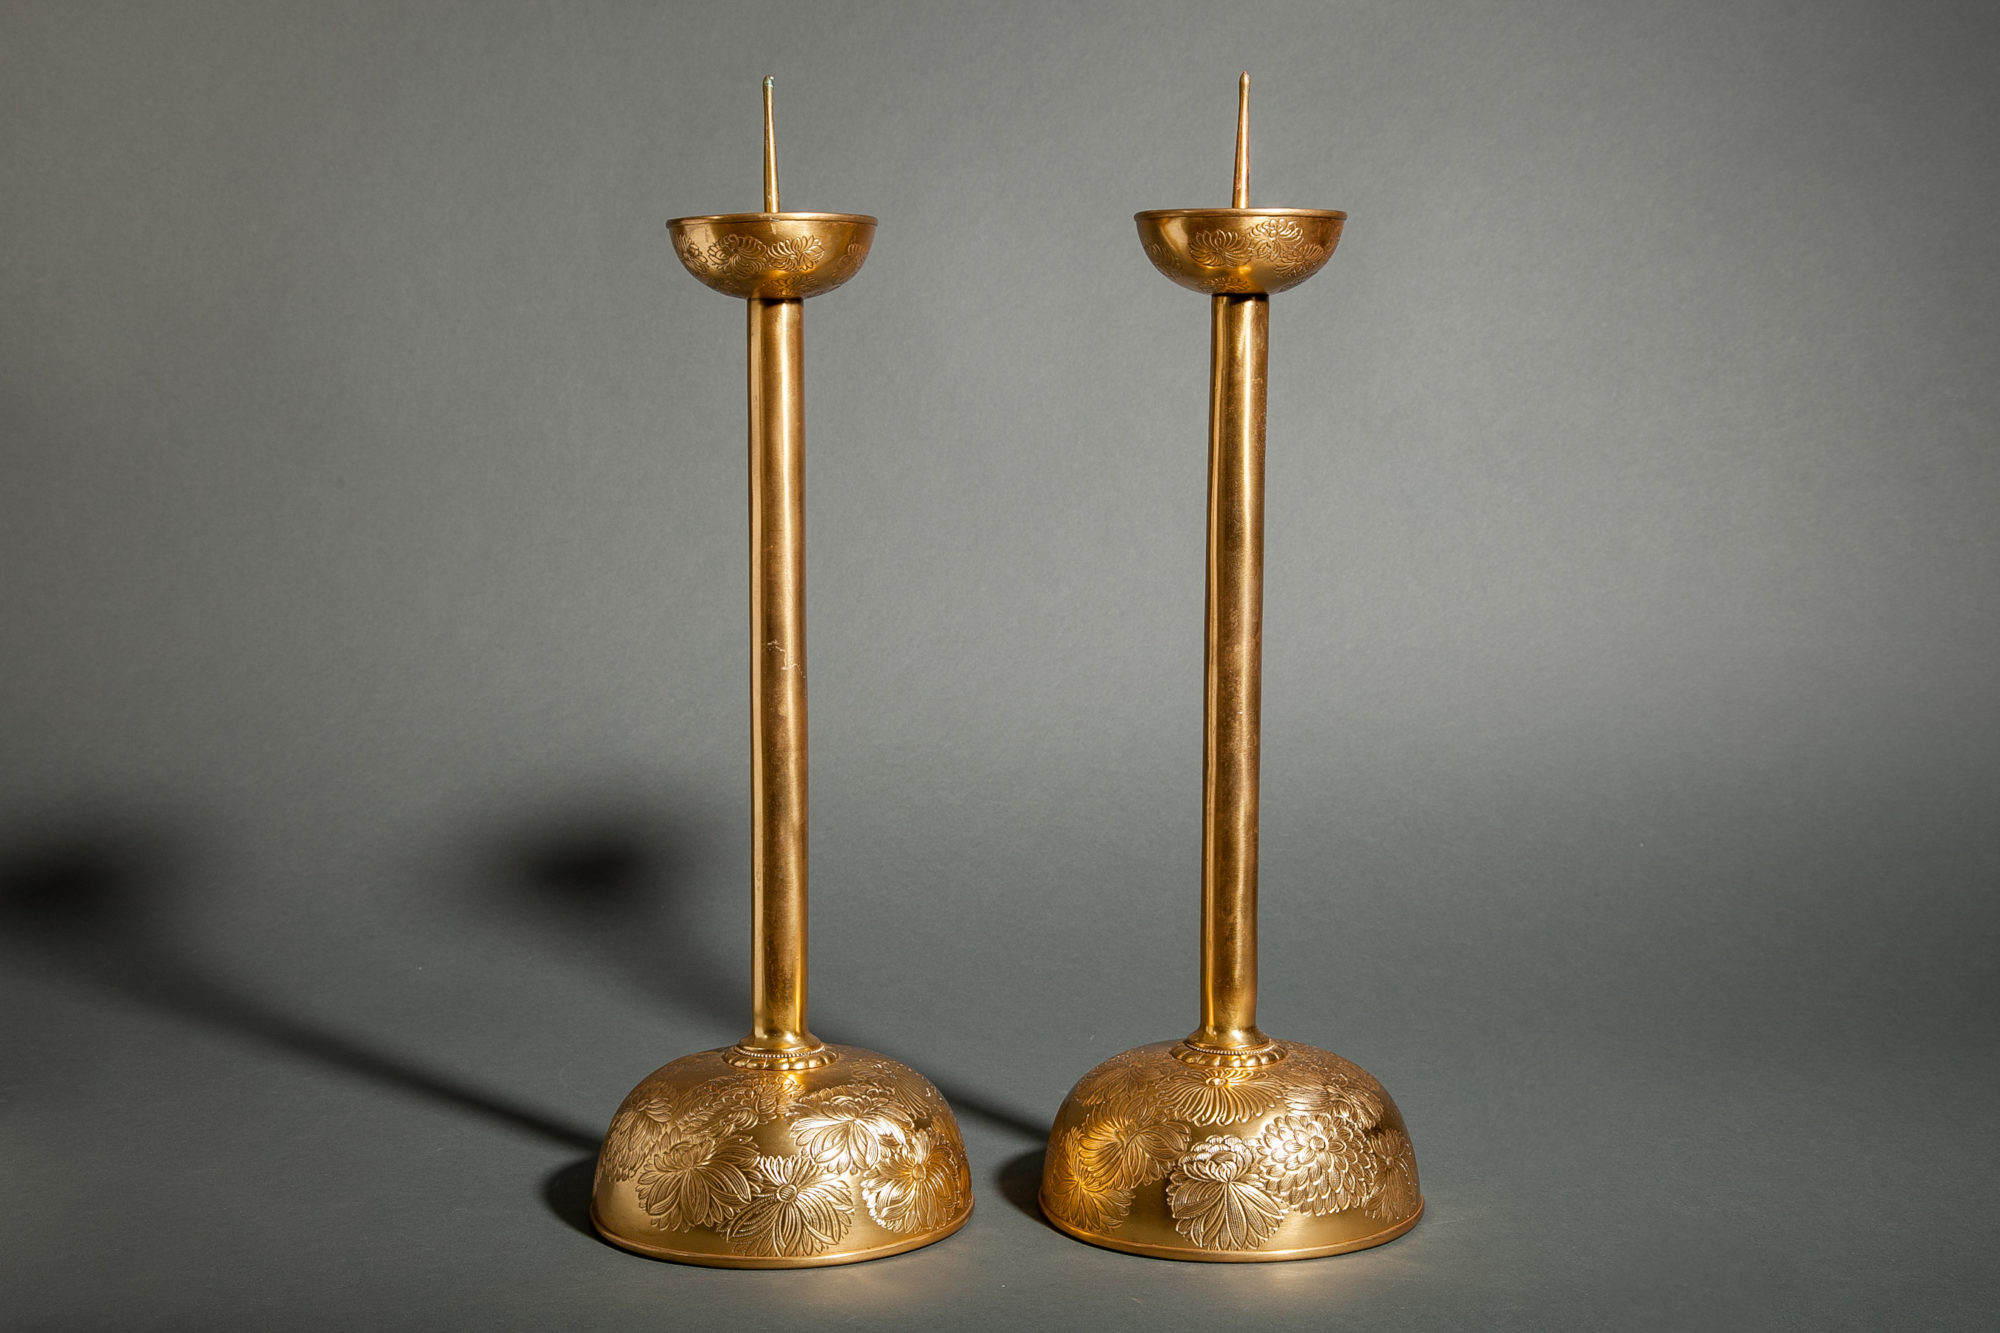 Pair of Antique Gilded Bronze Candlesticks